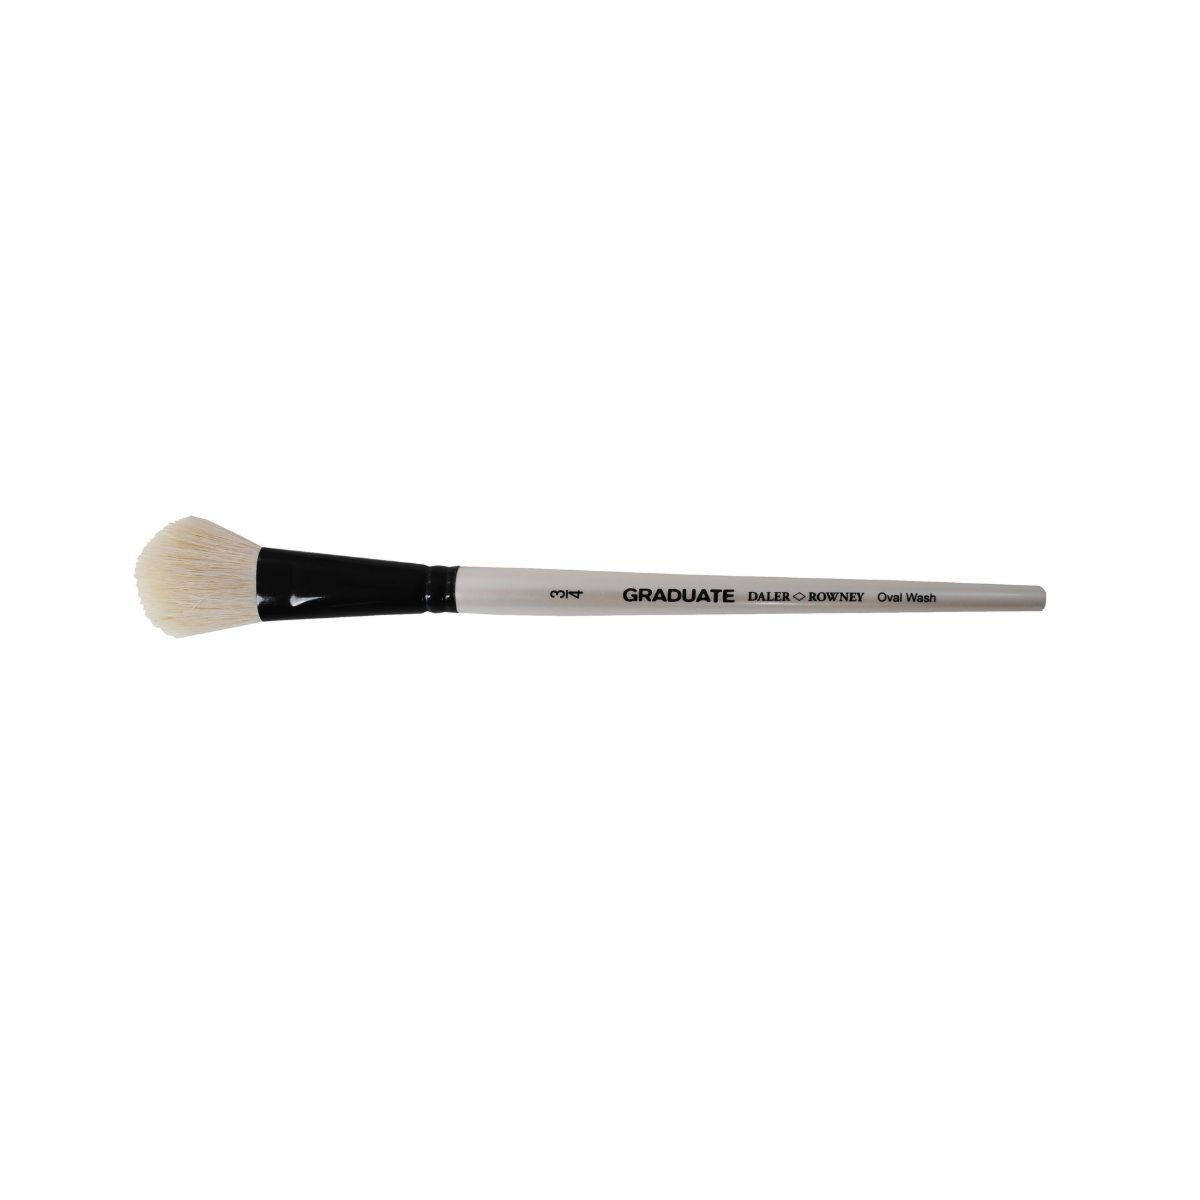 Daler Rowney Graduate Brush White Goat Oval Wash Three Quarter